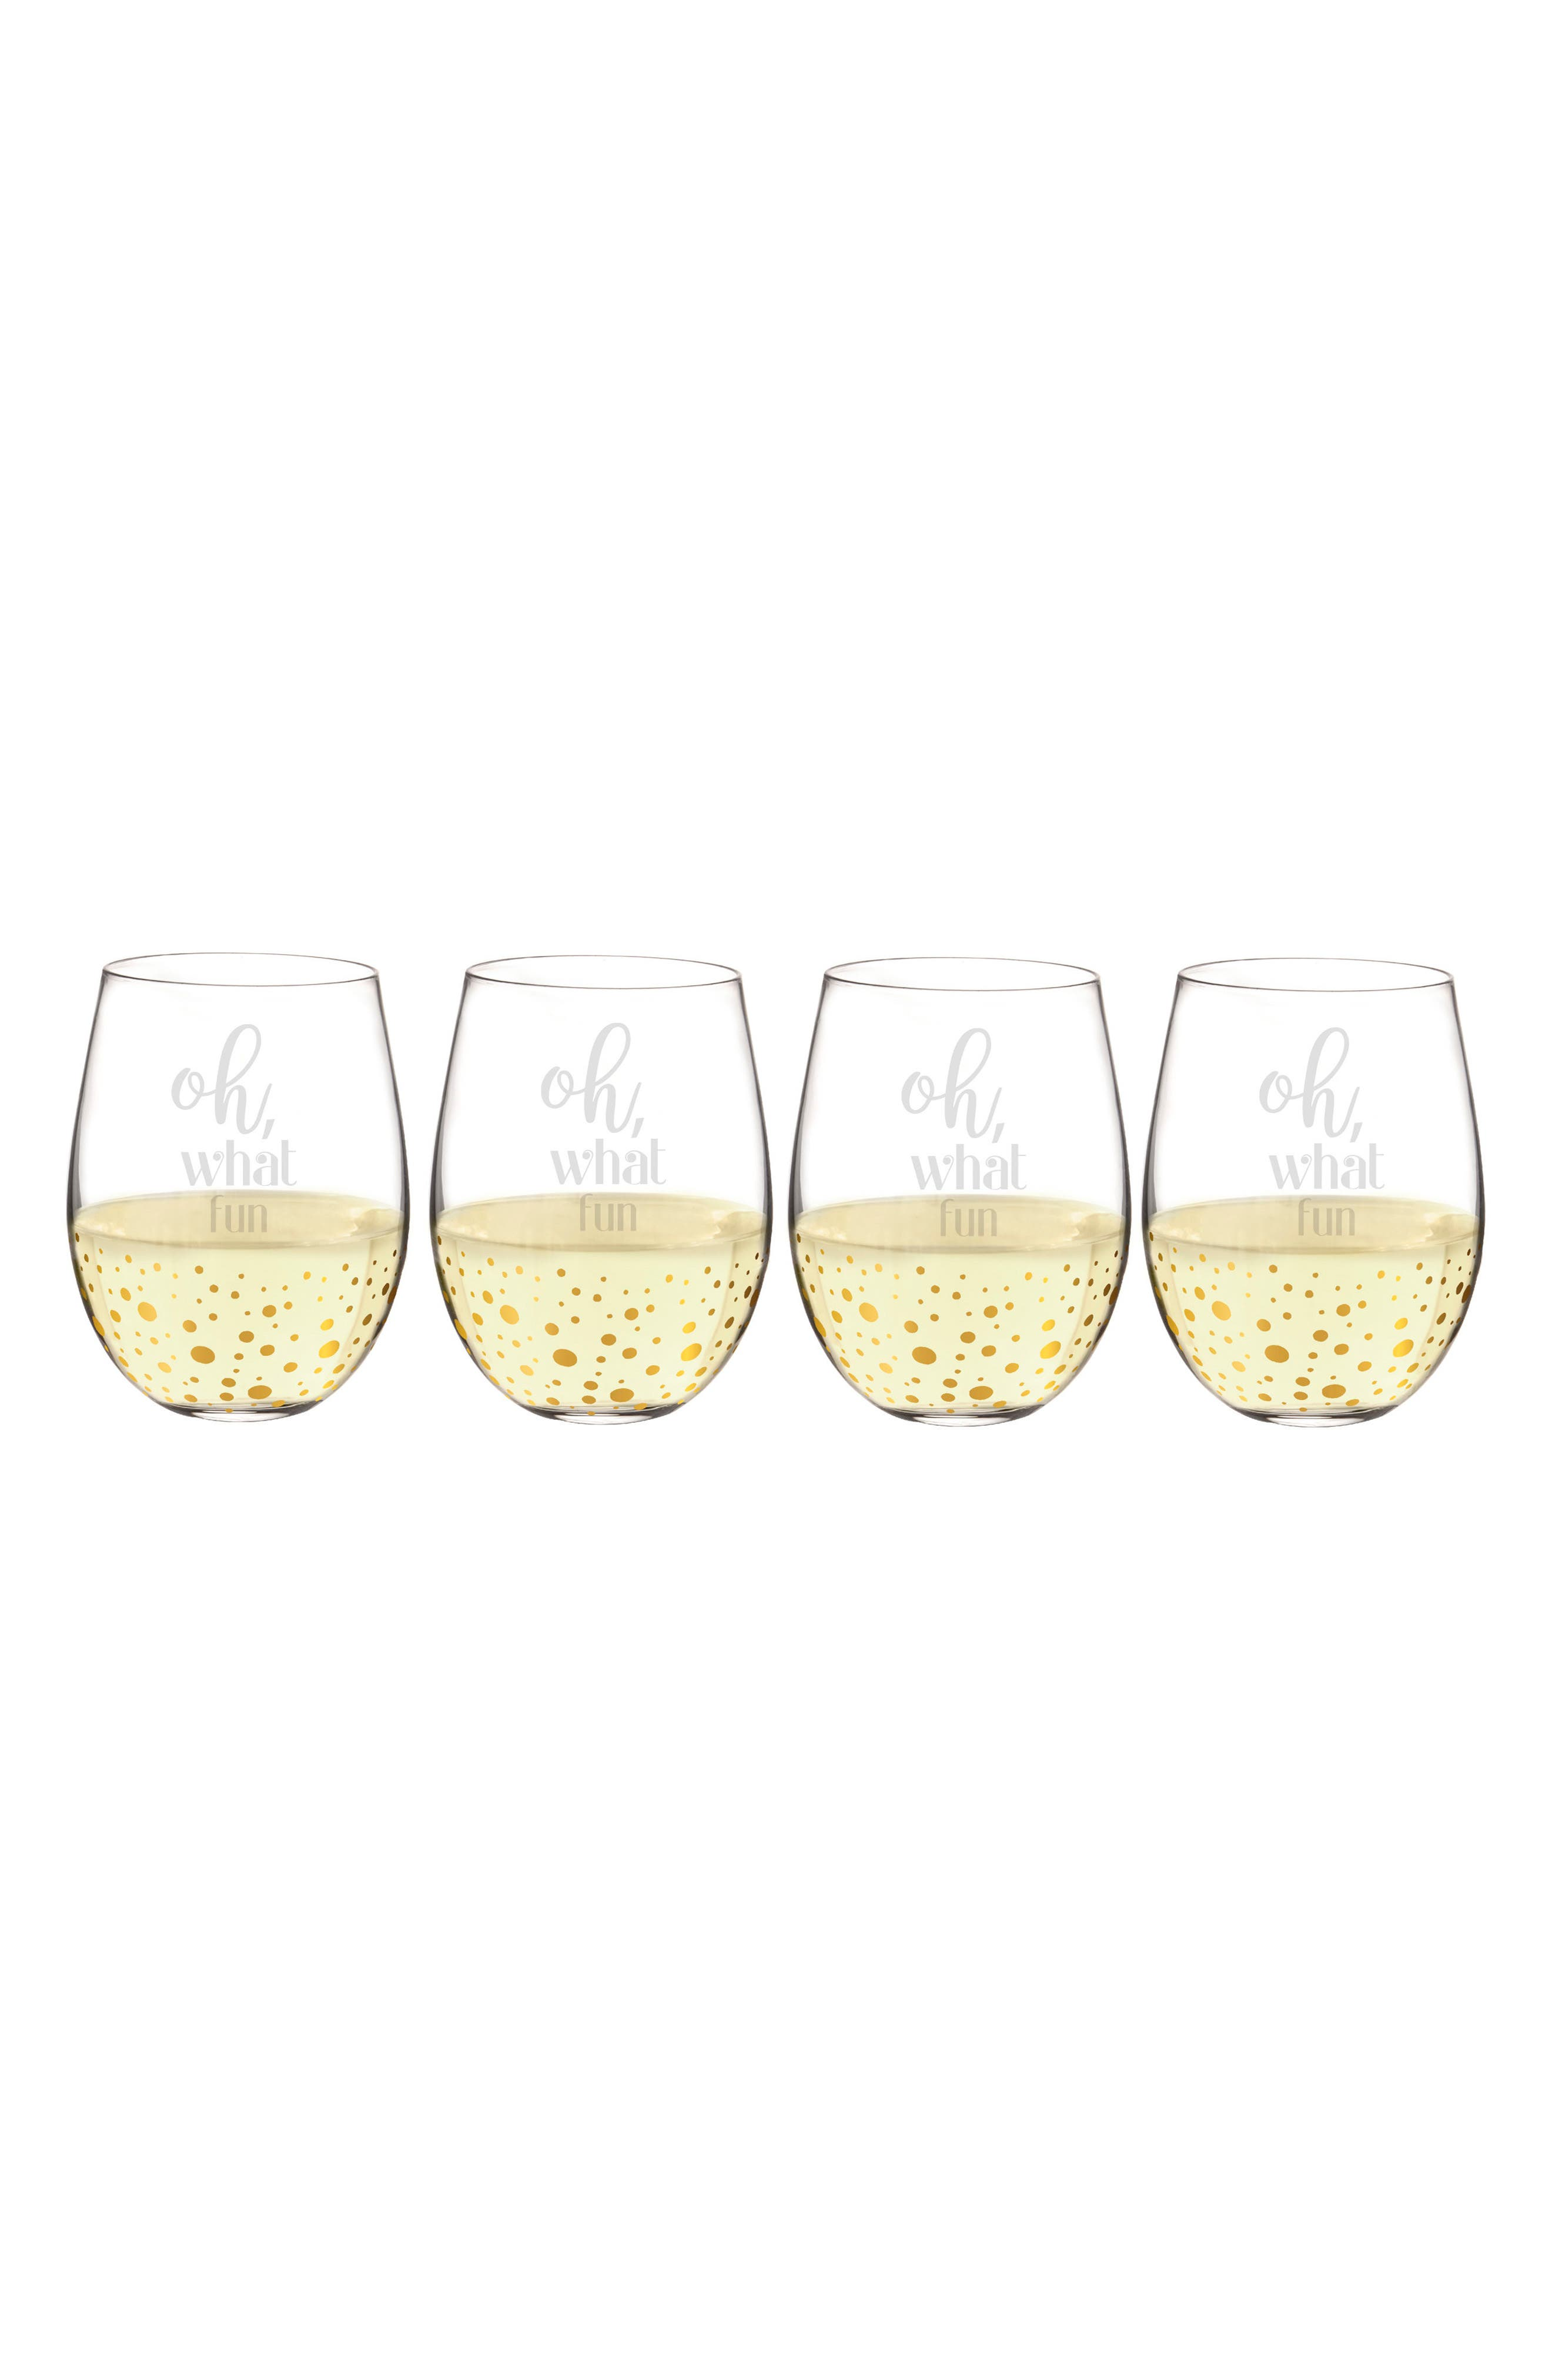 Cathy's Concepts Oh What Fun Set of 4 Stemless Wine Glasses